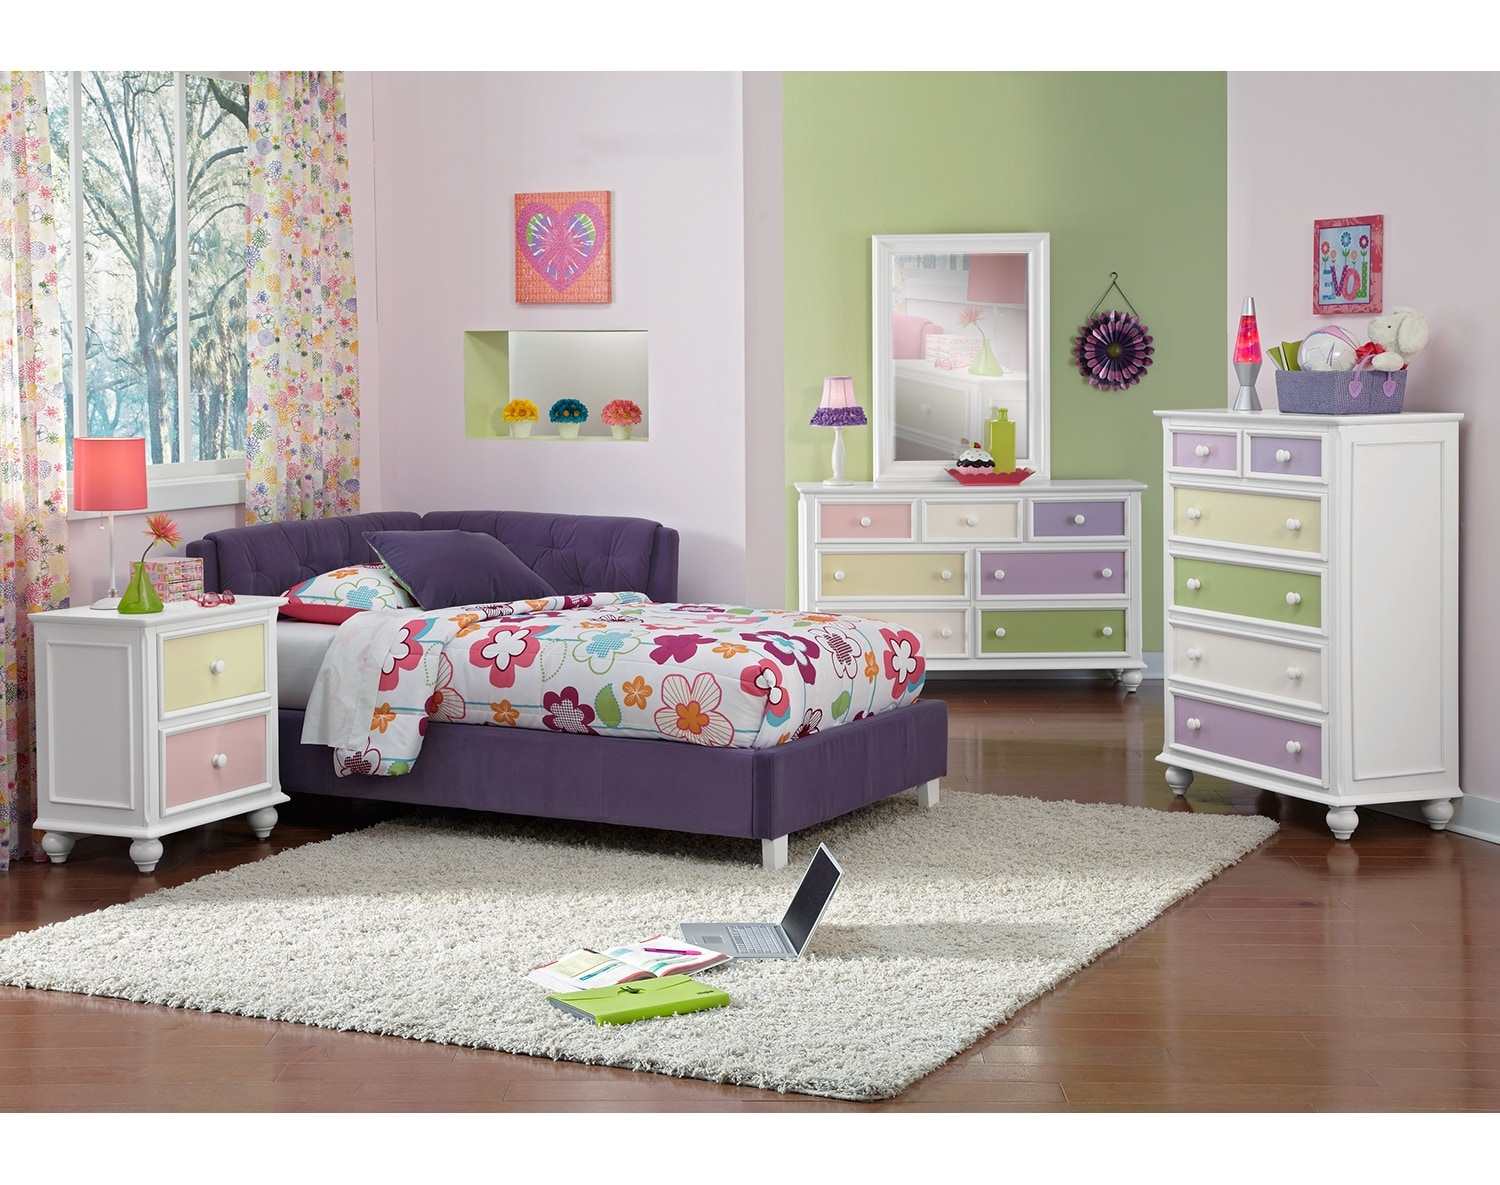 Kids Furniture - The Taylor Purple Collection - Twin Corner Bed